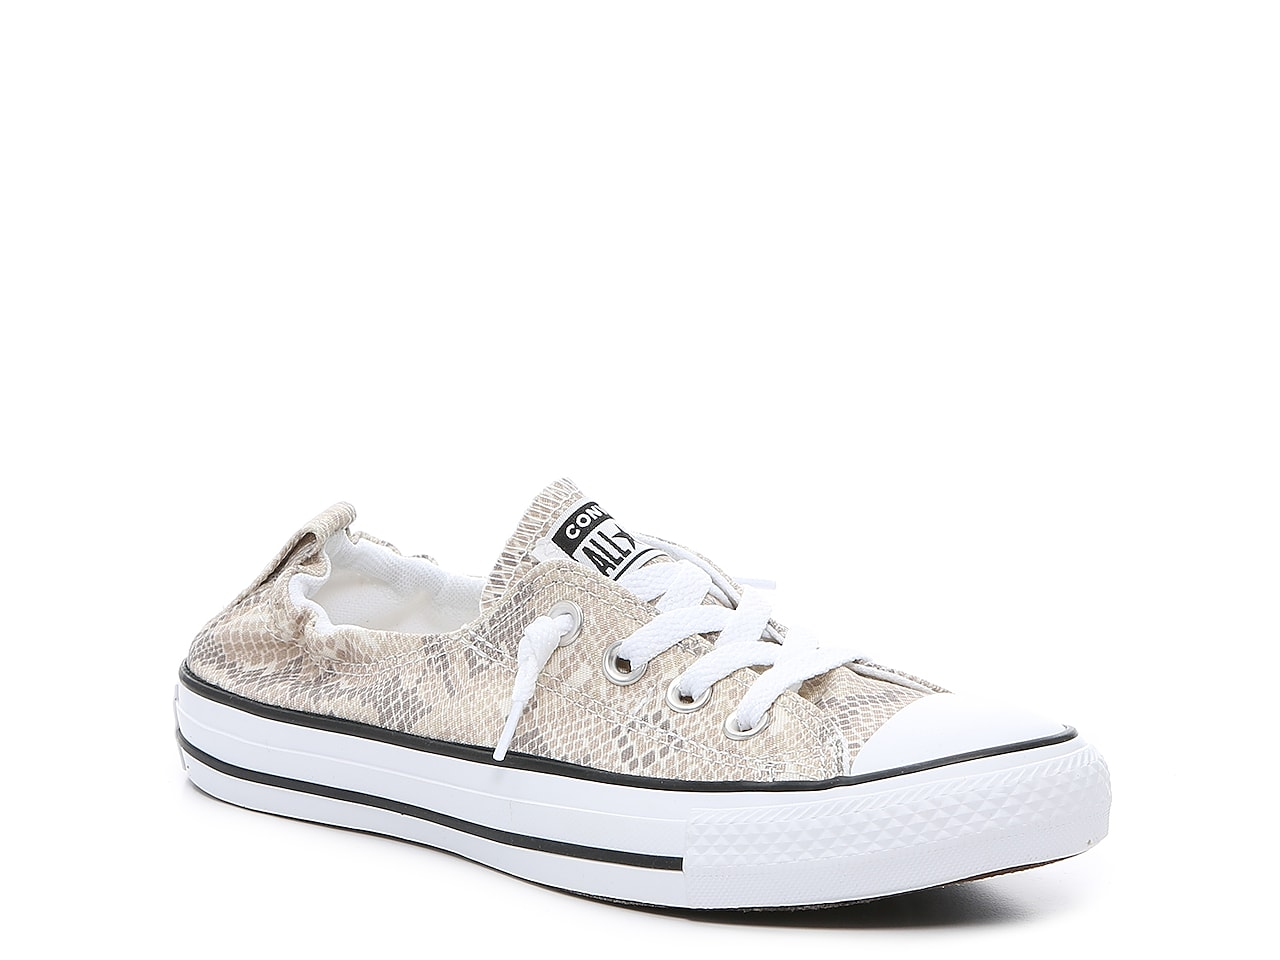 Chuck Taylor All Star Shoreline Slip-On Sneaker - Women's